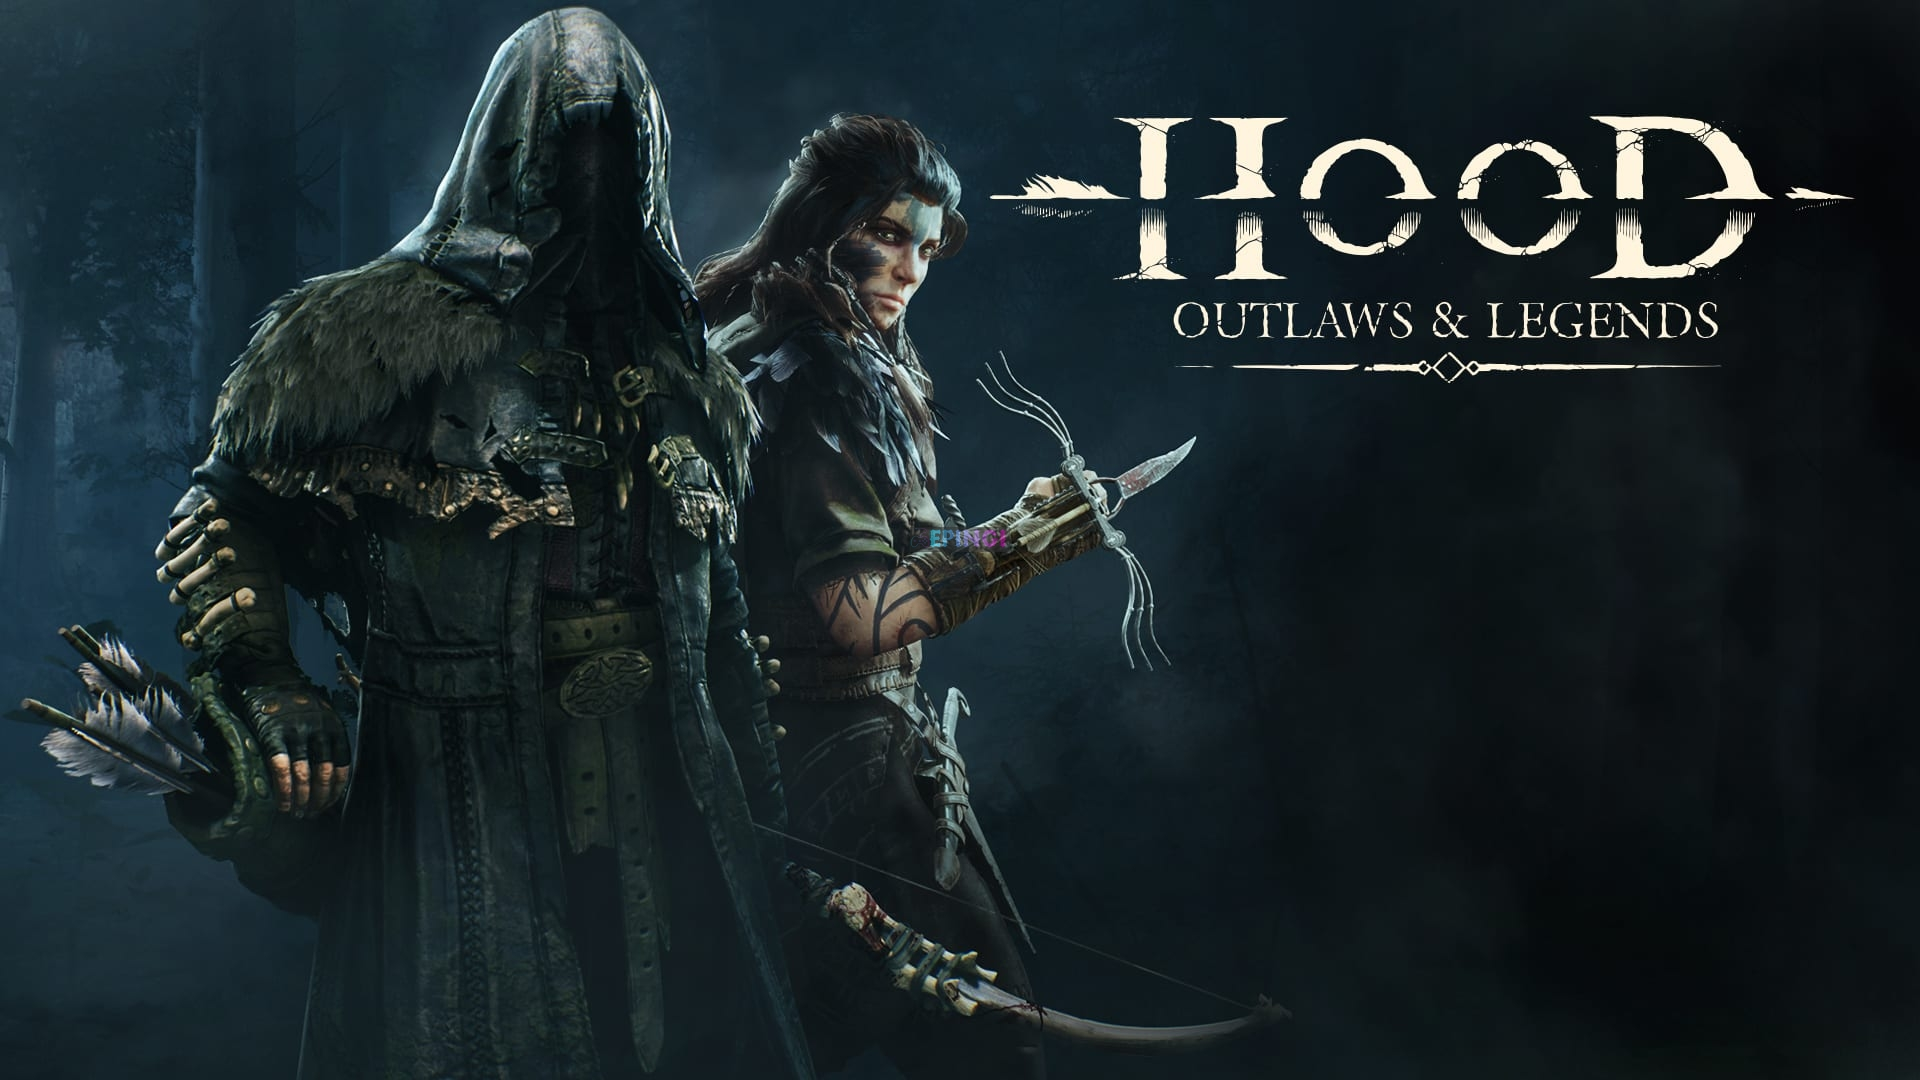 Hood Outlaws And Legends PC Version Full Game Setup Free Download